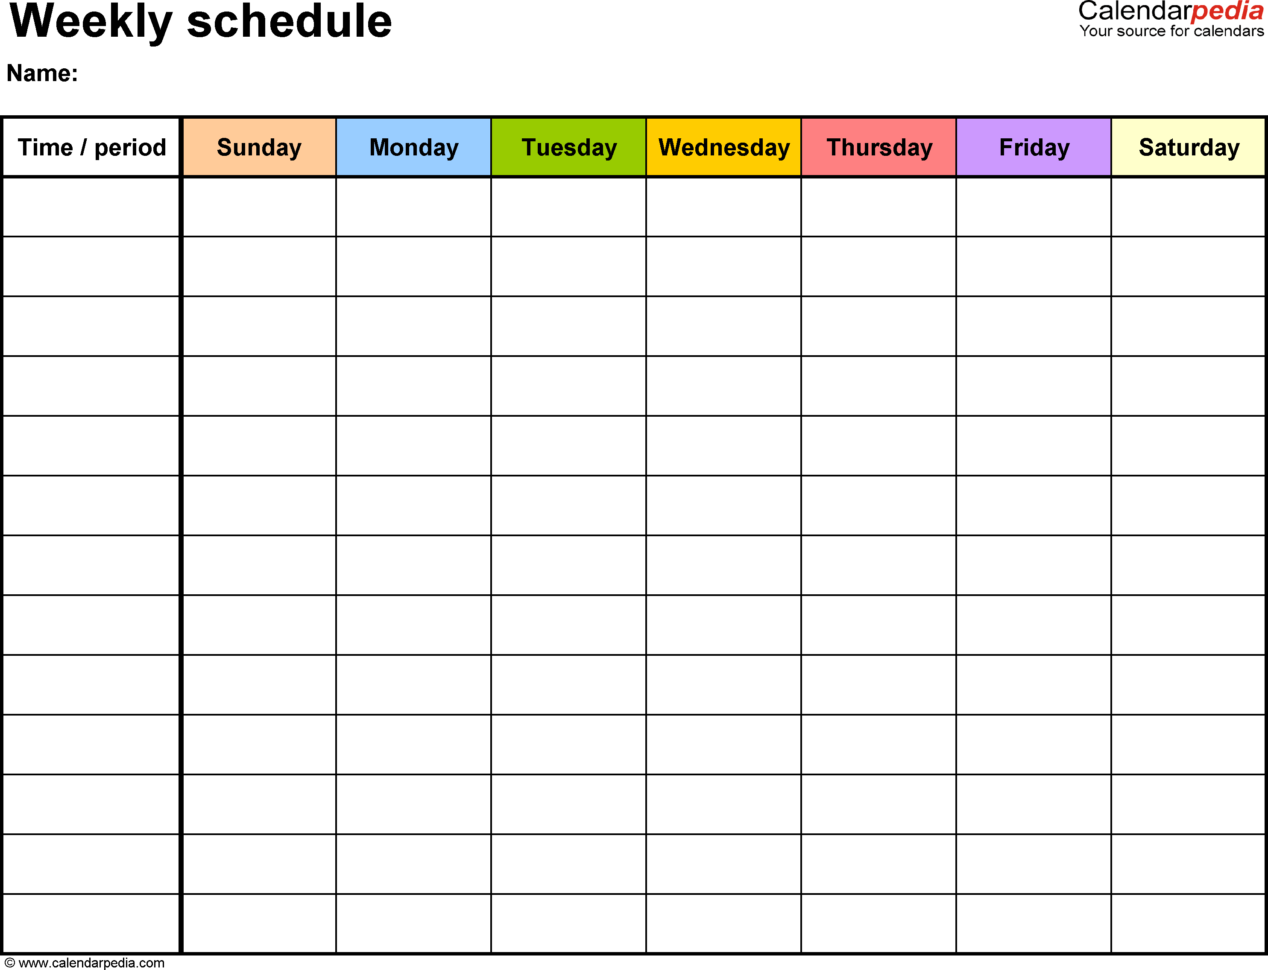 Free Weekly Schedule Templates For Word   18 Templates In Employee Schedule Templates